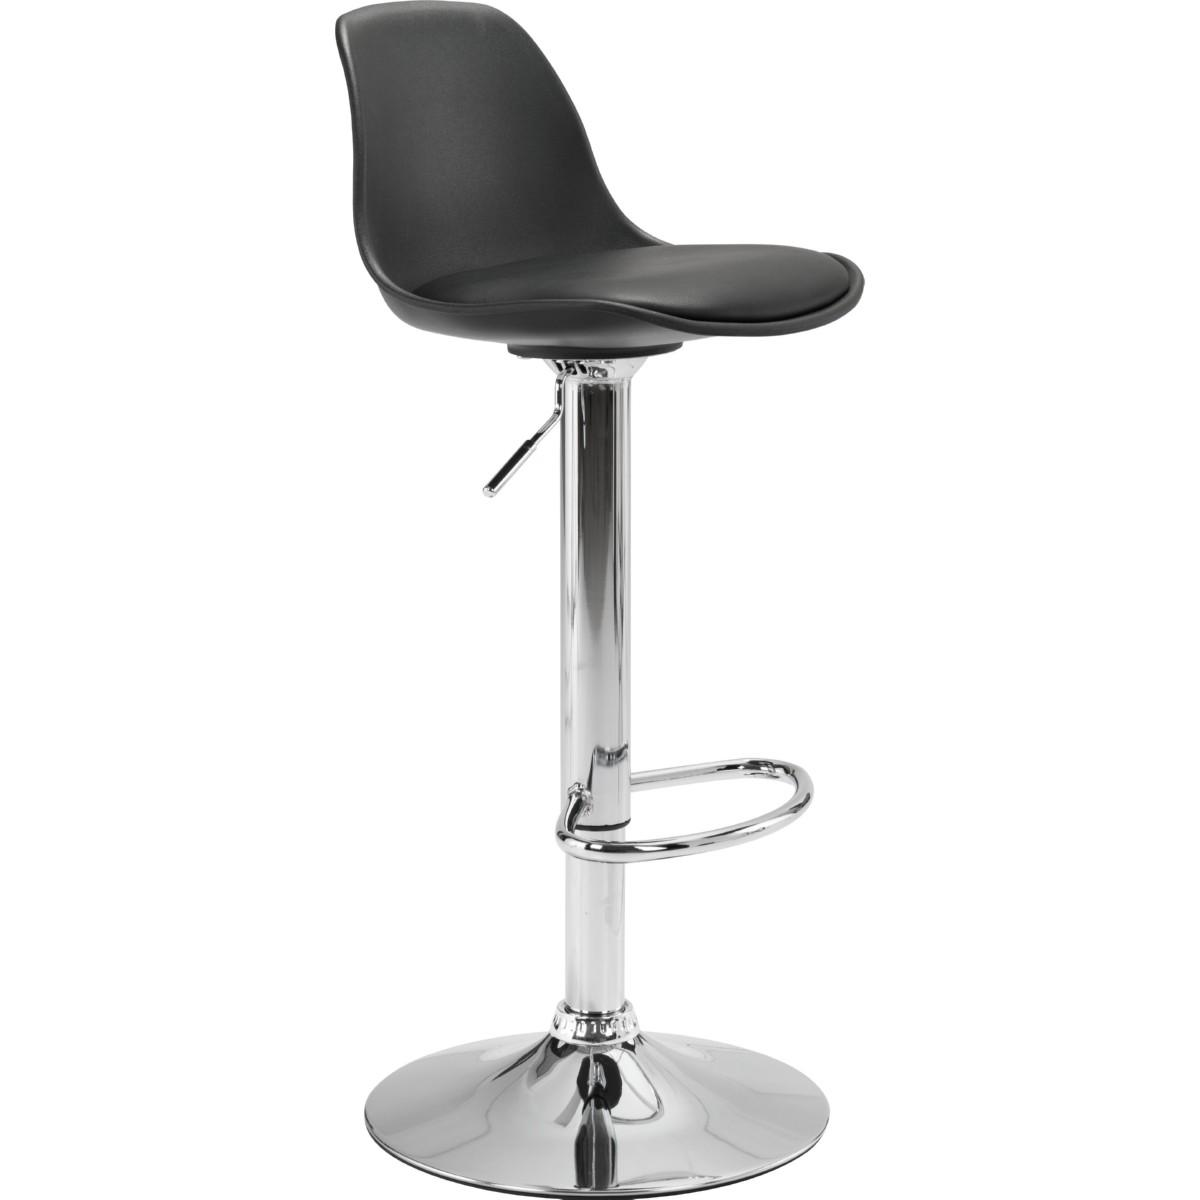 Zuo Furniture Modern Home Decor Bar Stools Dynamic